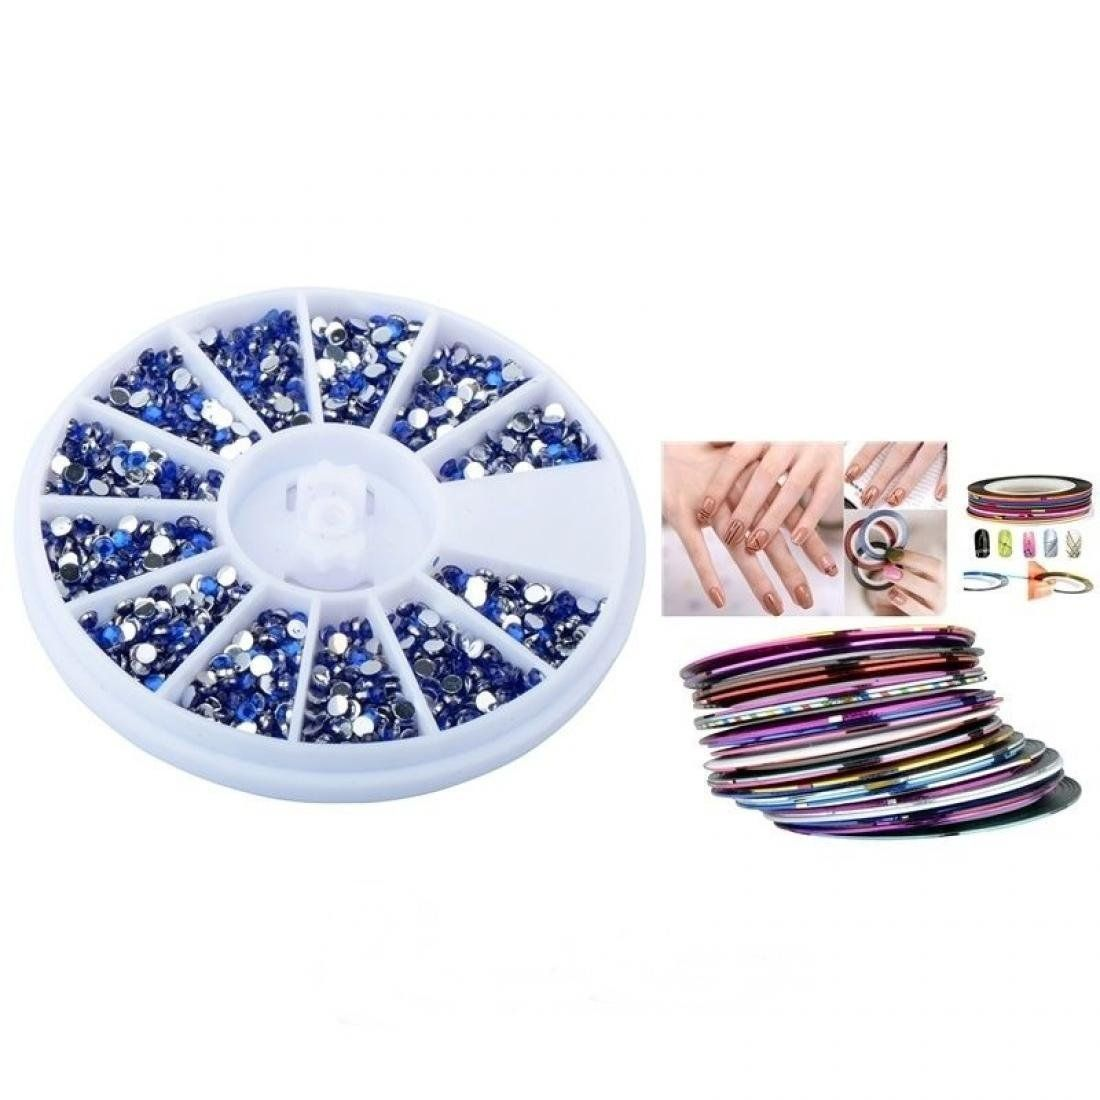 Nail art color violet - Bright Nail Art Tips Rolls Rhinestones Color Dark Blue With 30pcs Mixed Tape Line